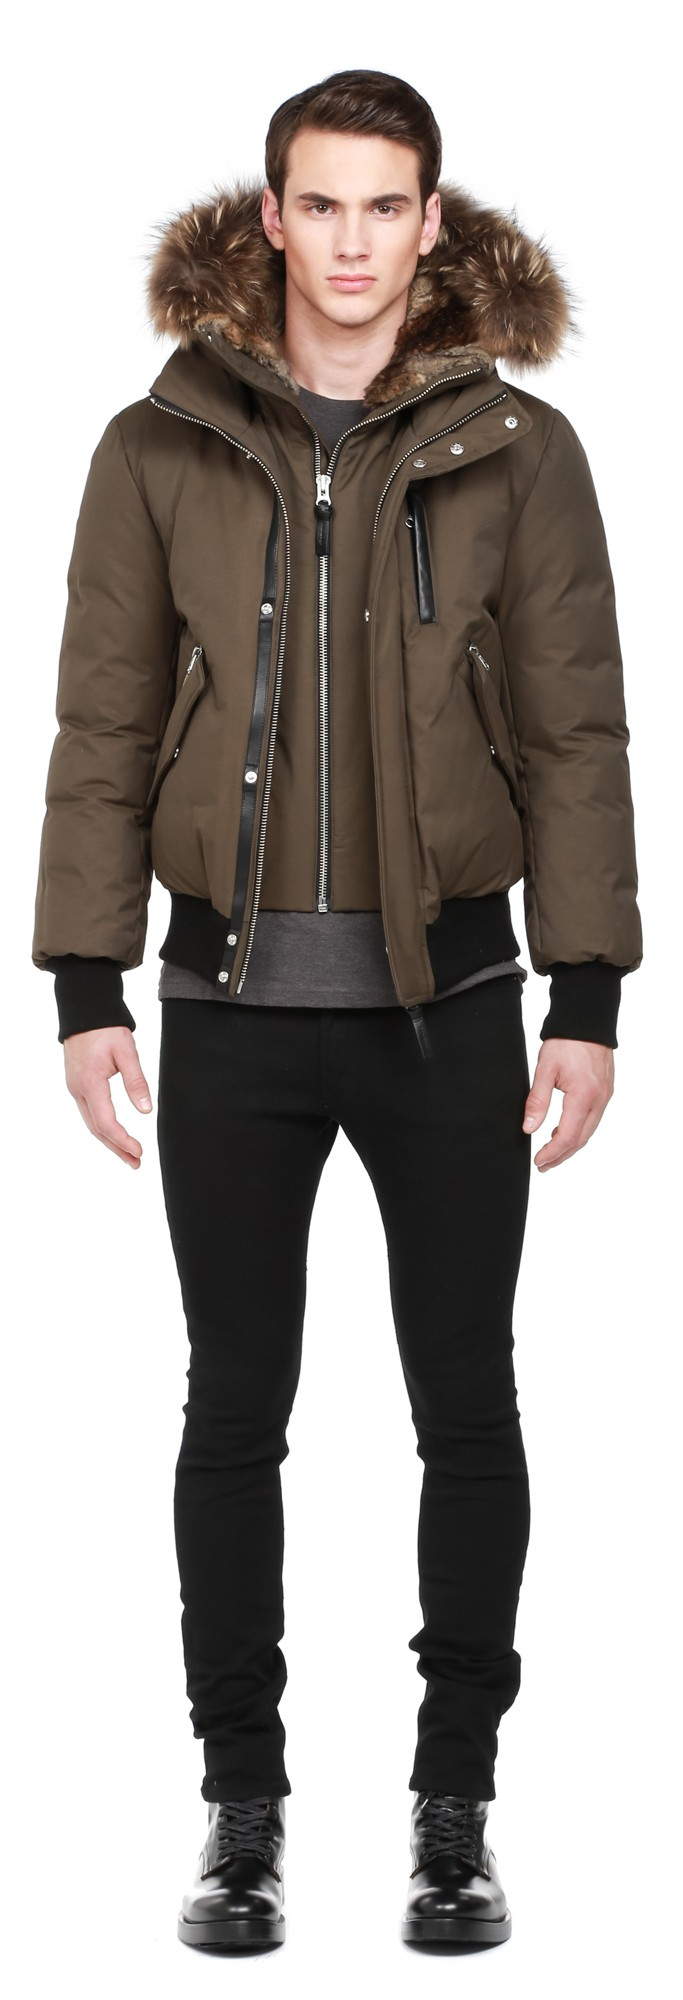 Dixon F5 Army Luxe Down Bomber With Fur Hood Mackage Men